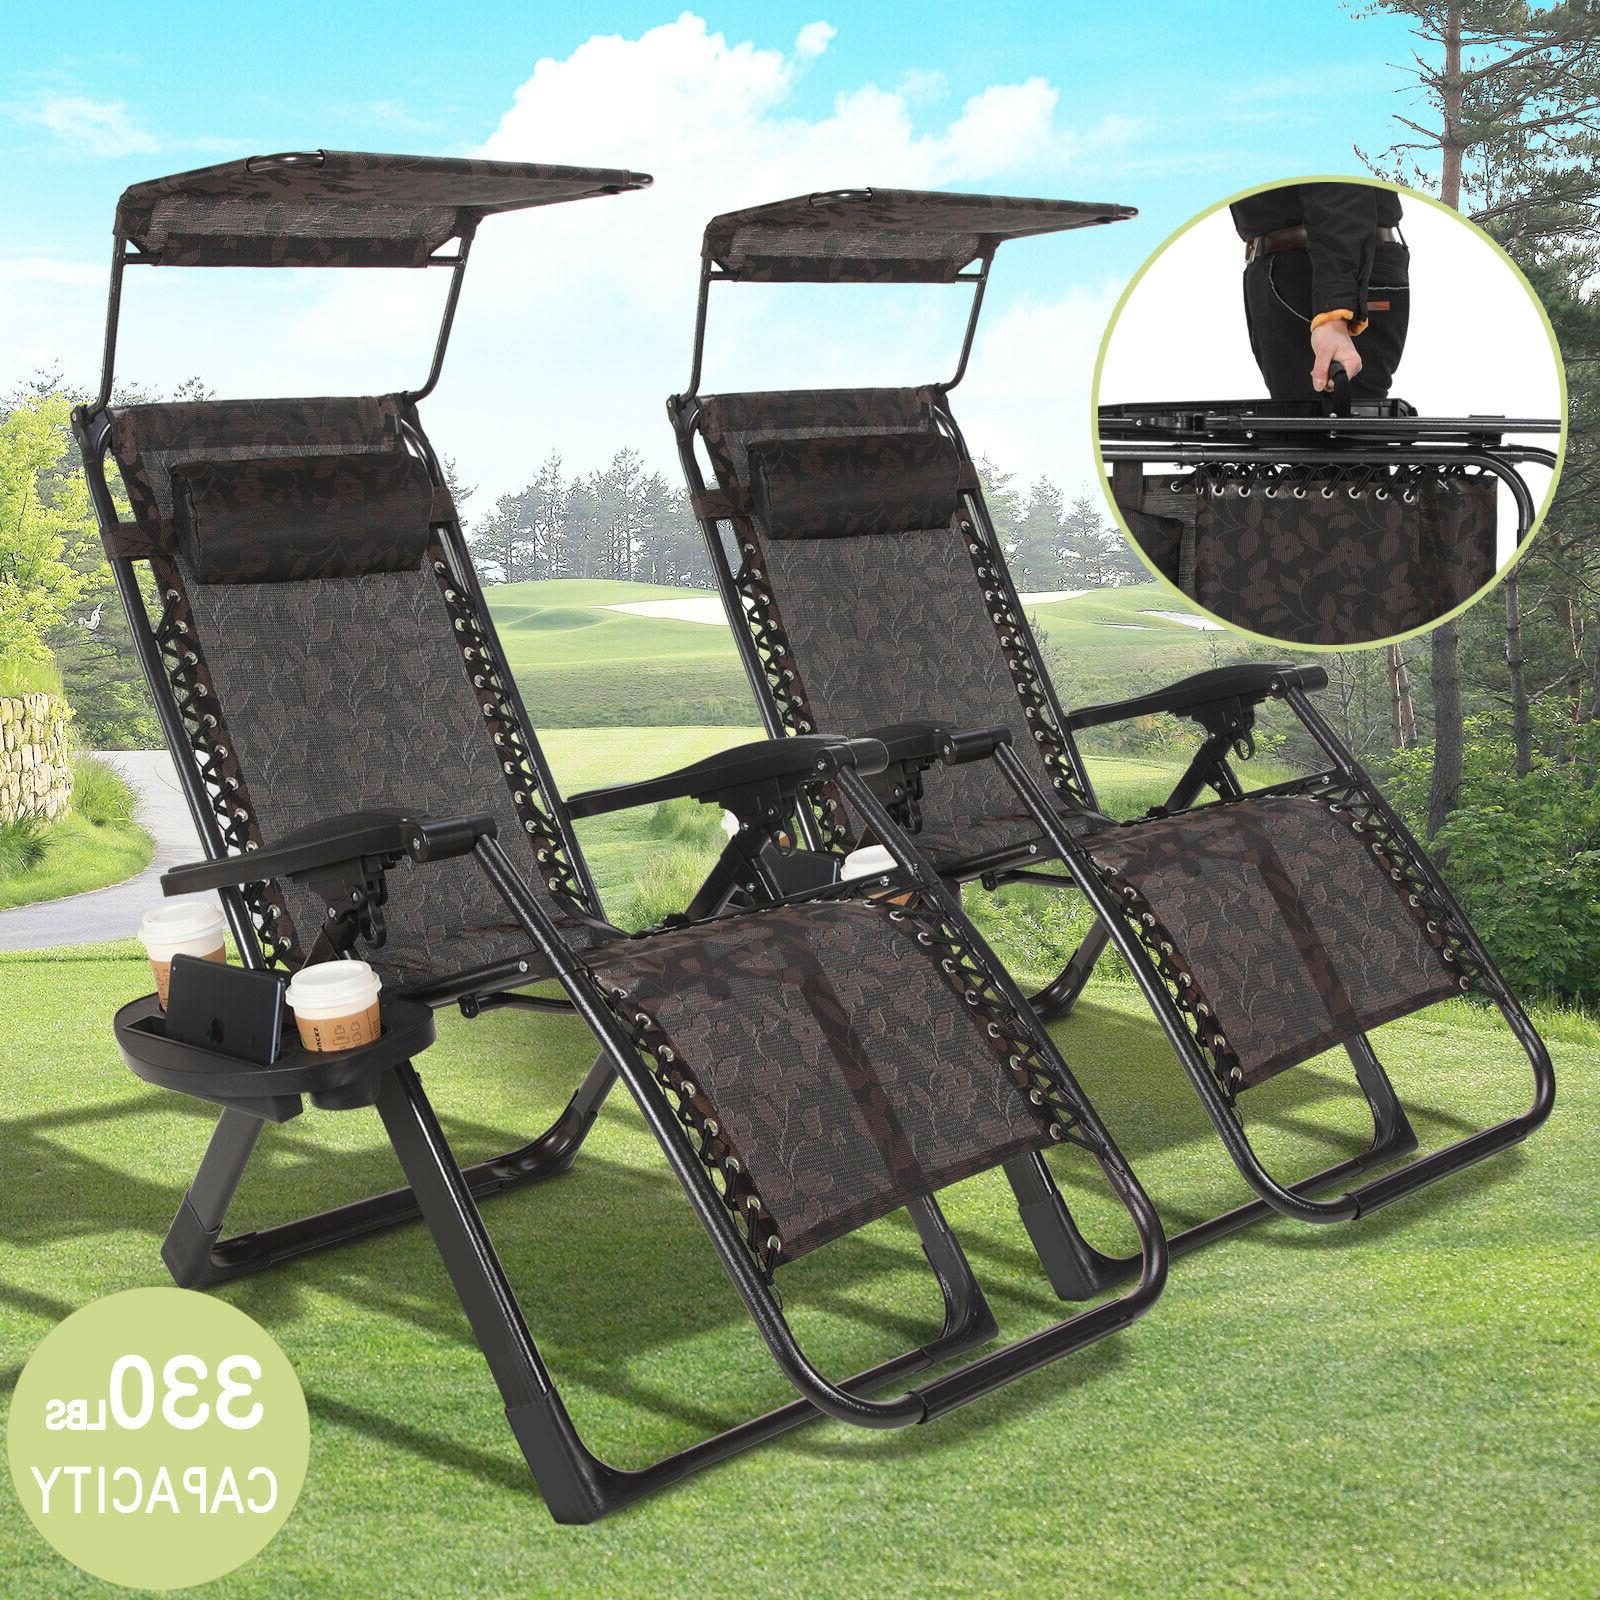 2 x Folding Gravity Outdoor Beach Sunshade